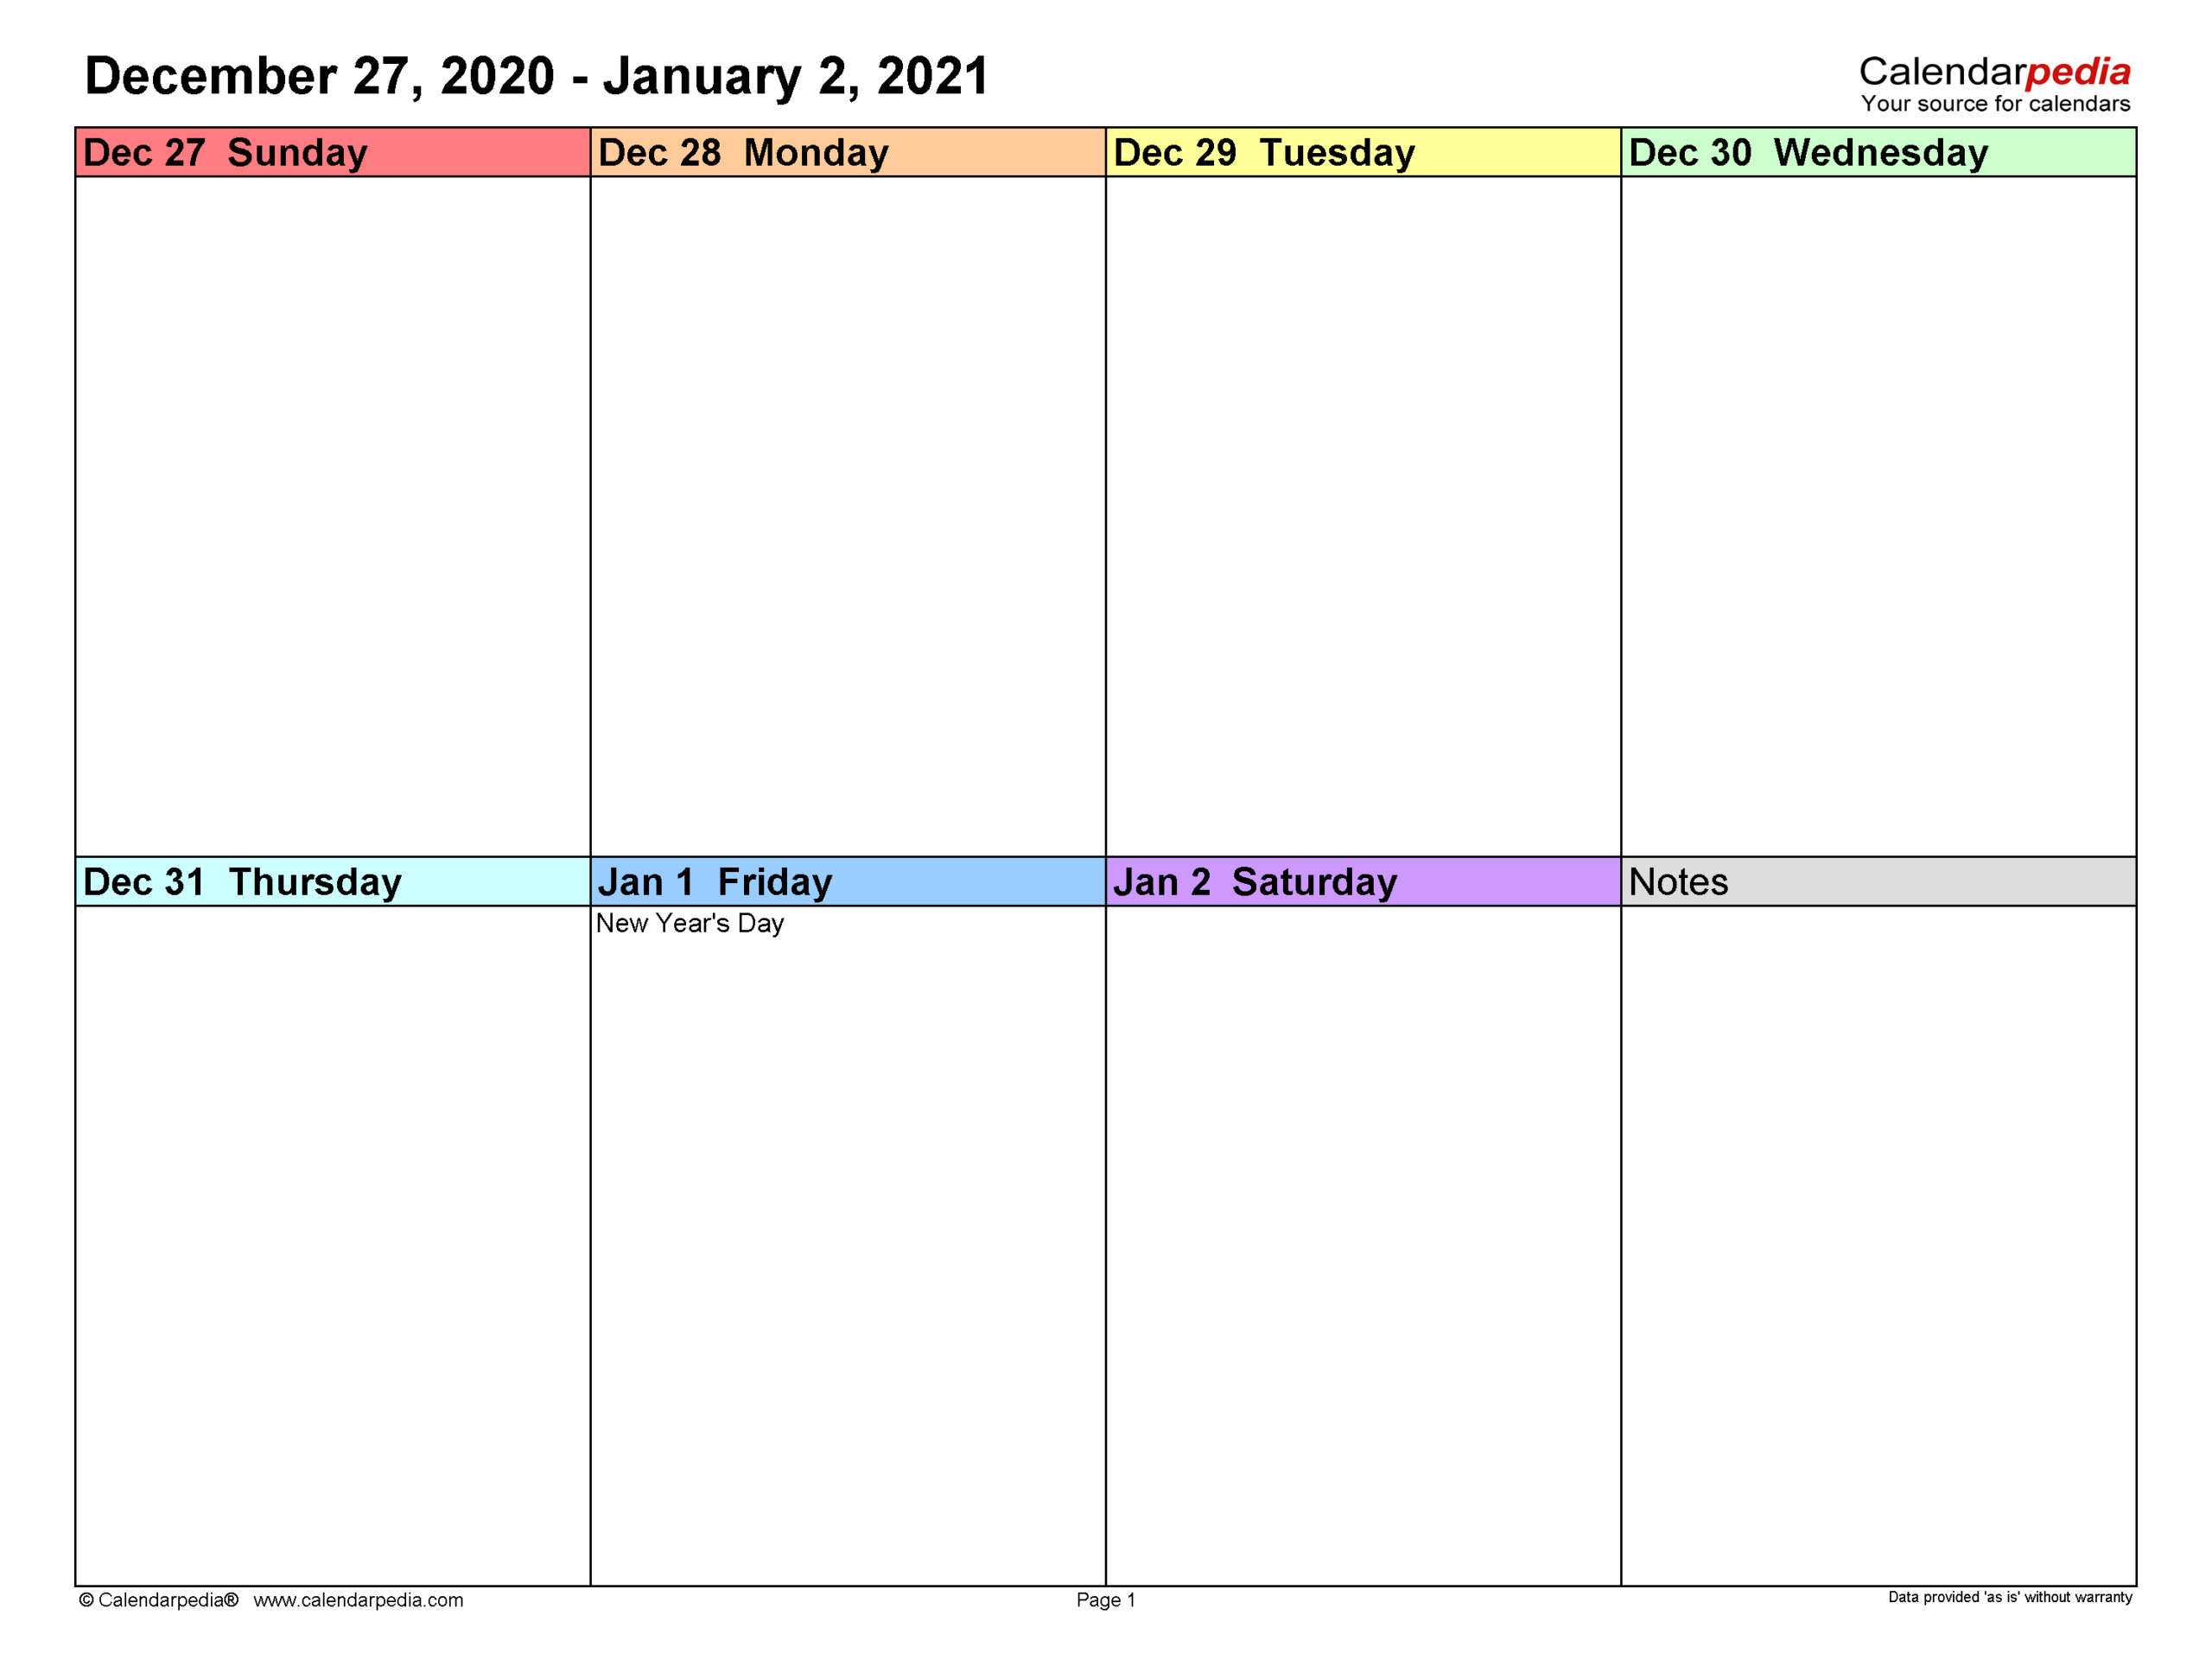 Weekly Calendars 2021 For Word - 12 Free Printable Templates with Lesson Plan Calendar Template 2021